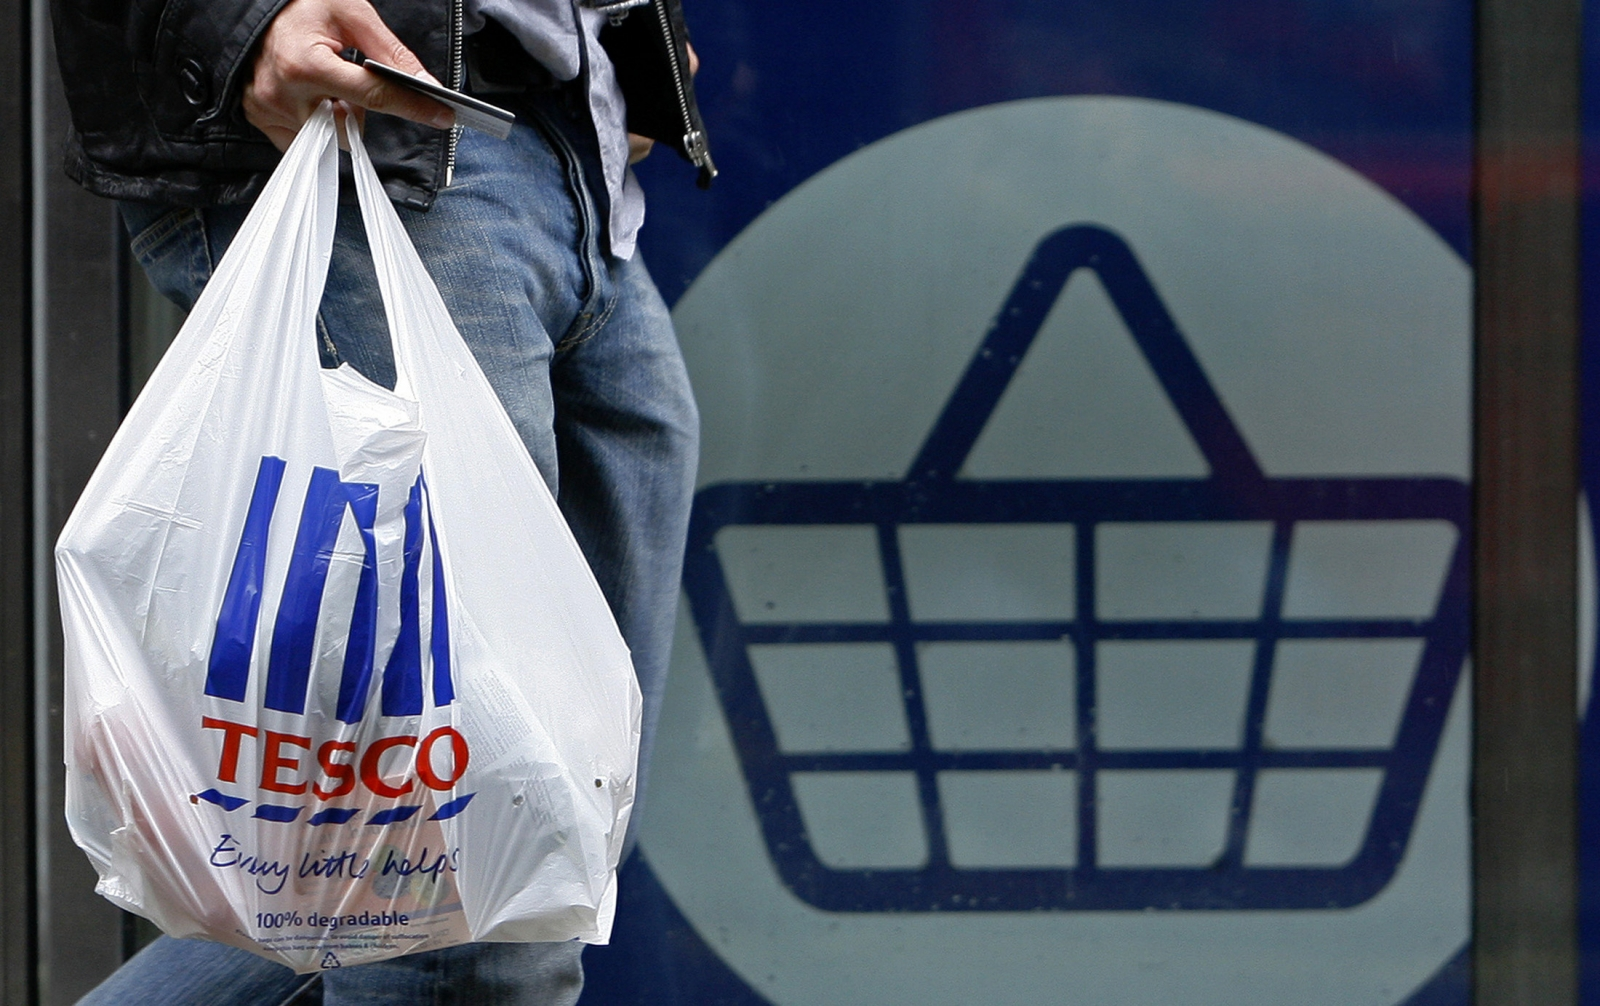 A man carries a carrier bag as he leaves a Tesco supermarket in London